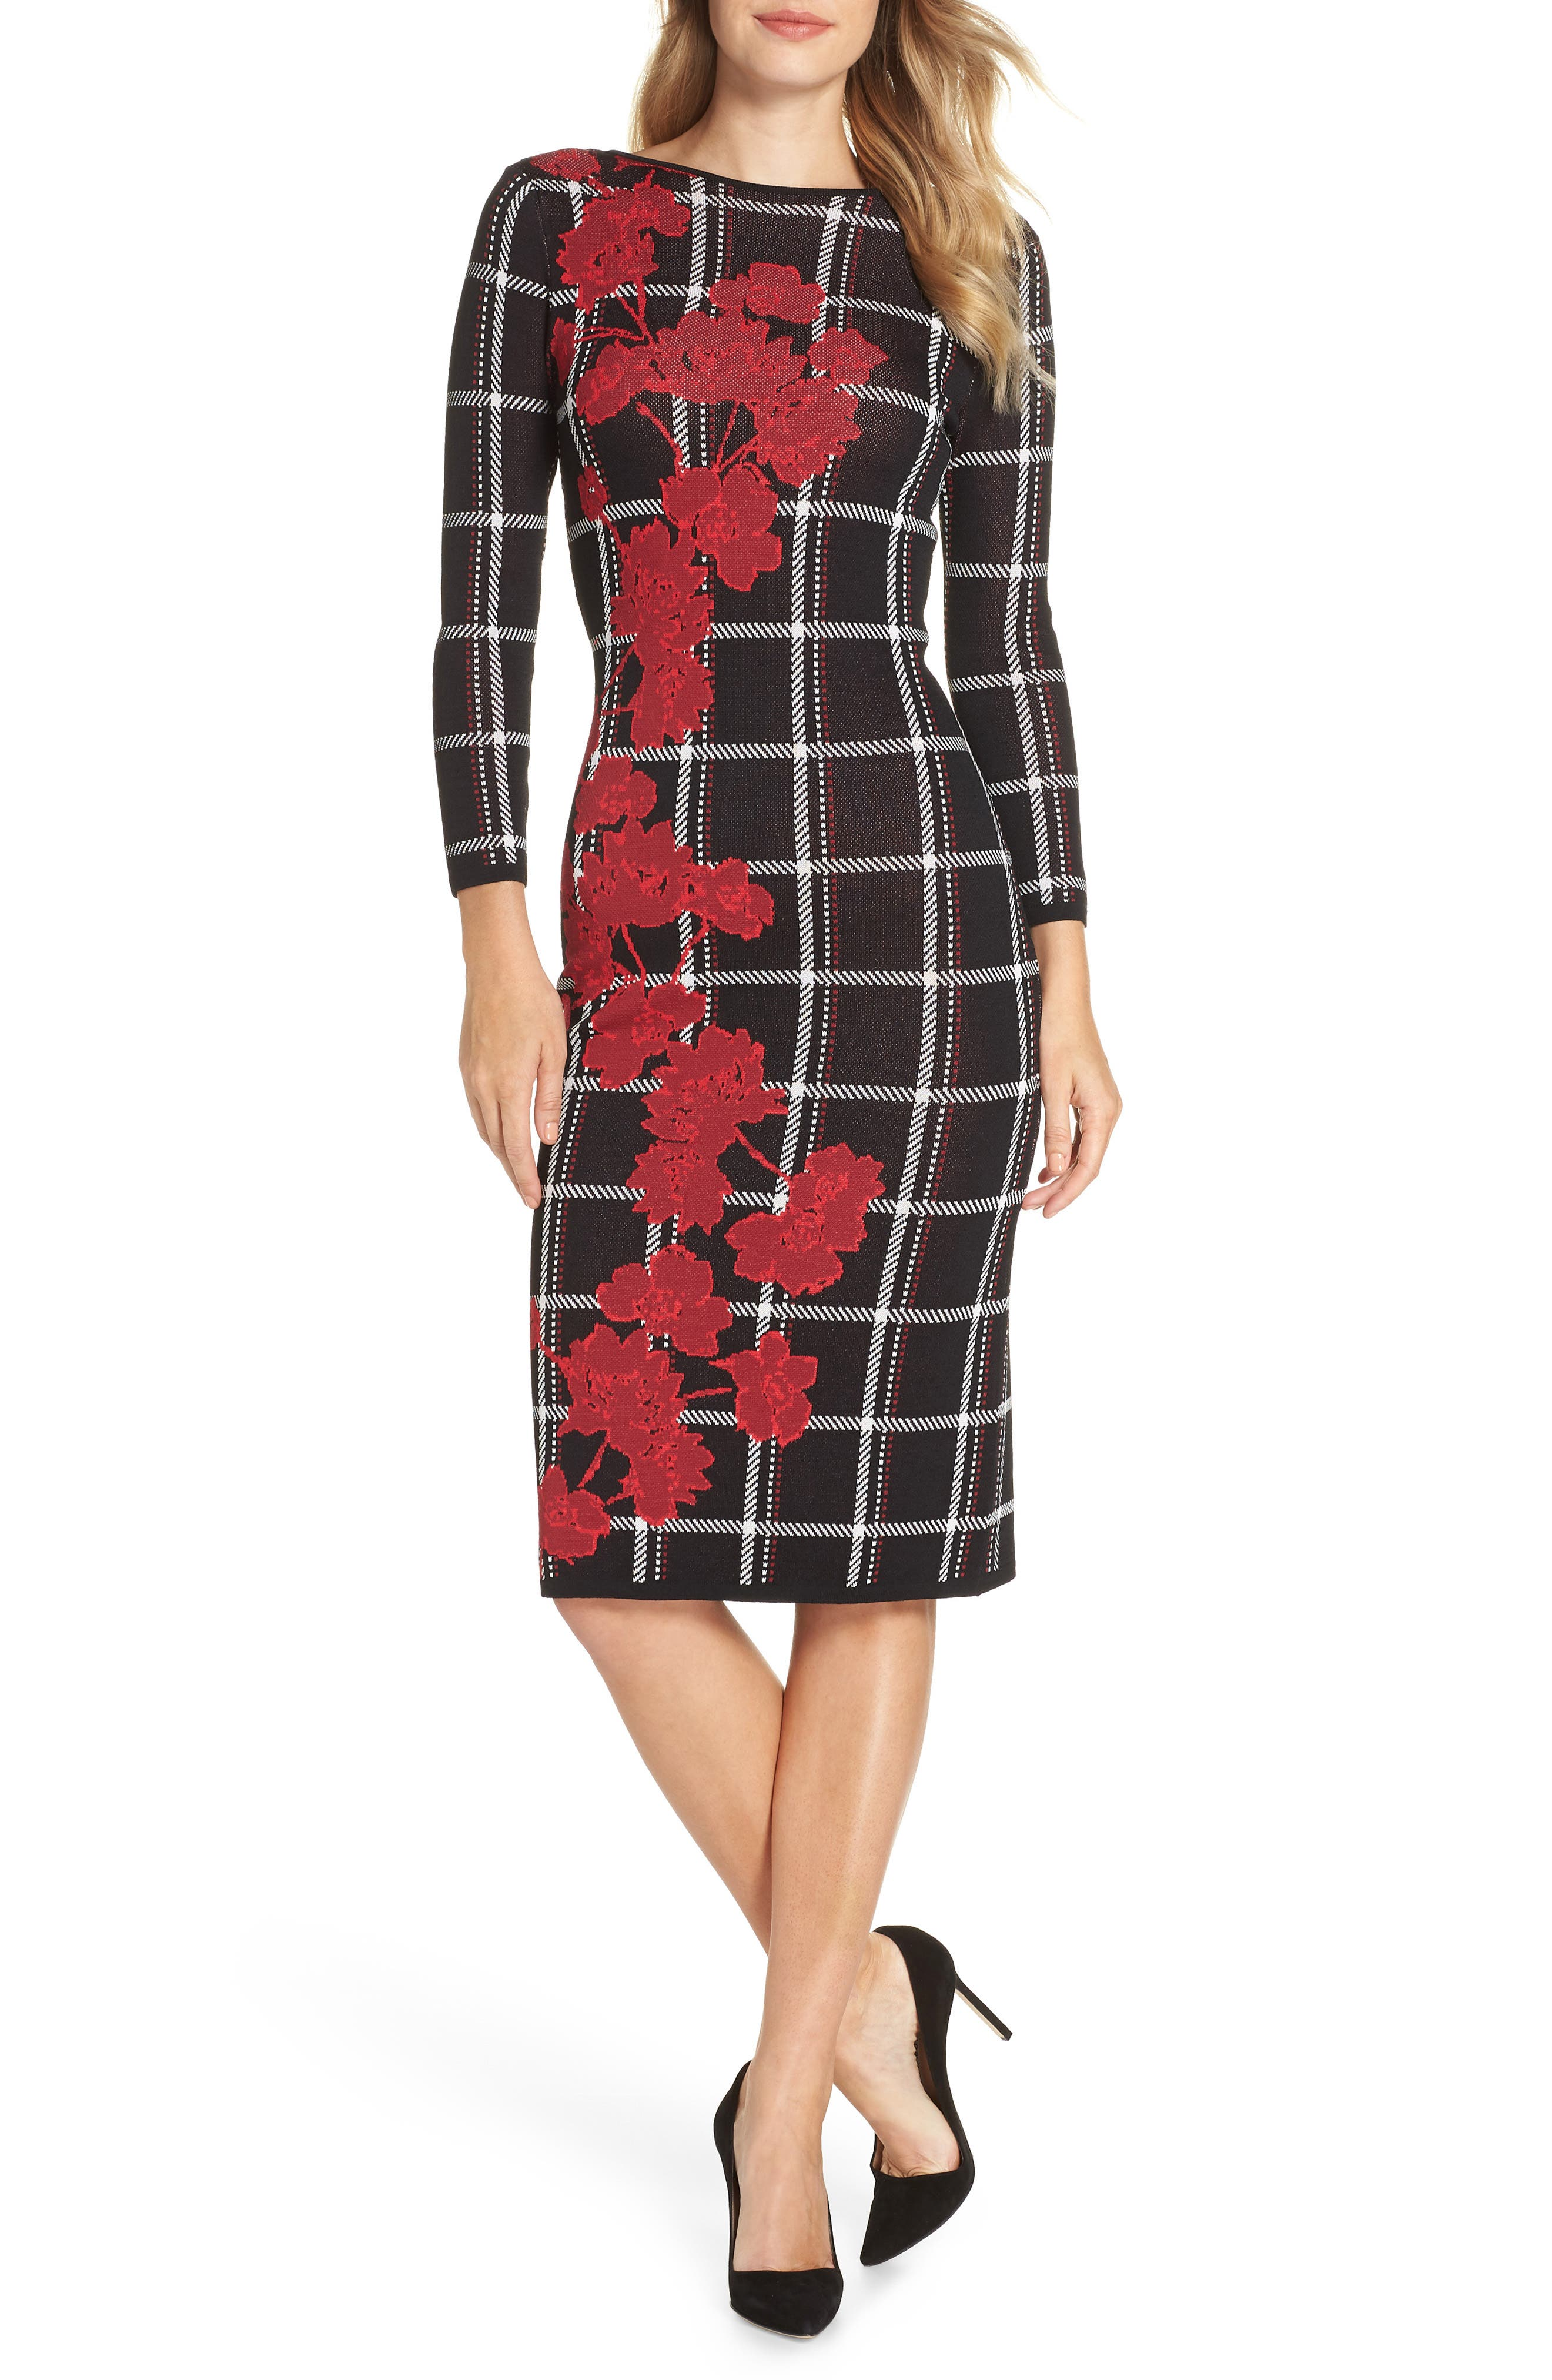 Vince Camuto Jacquard Sweater Dress